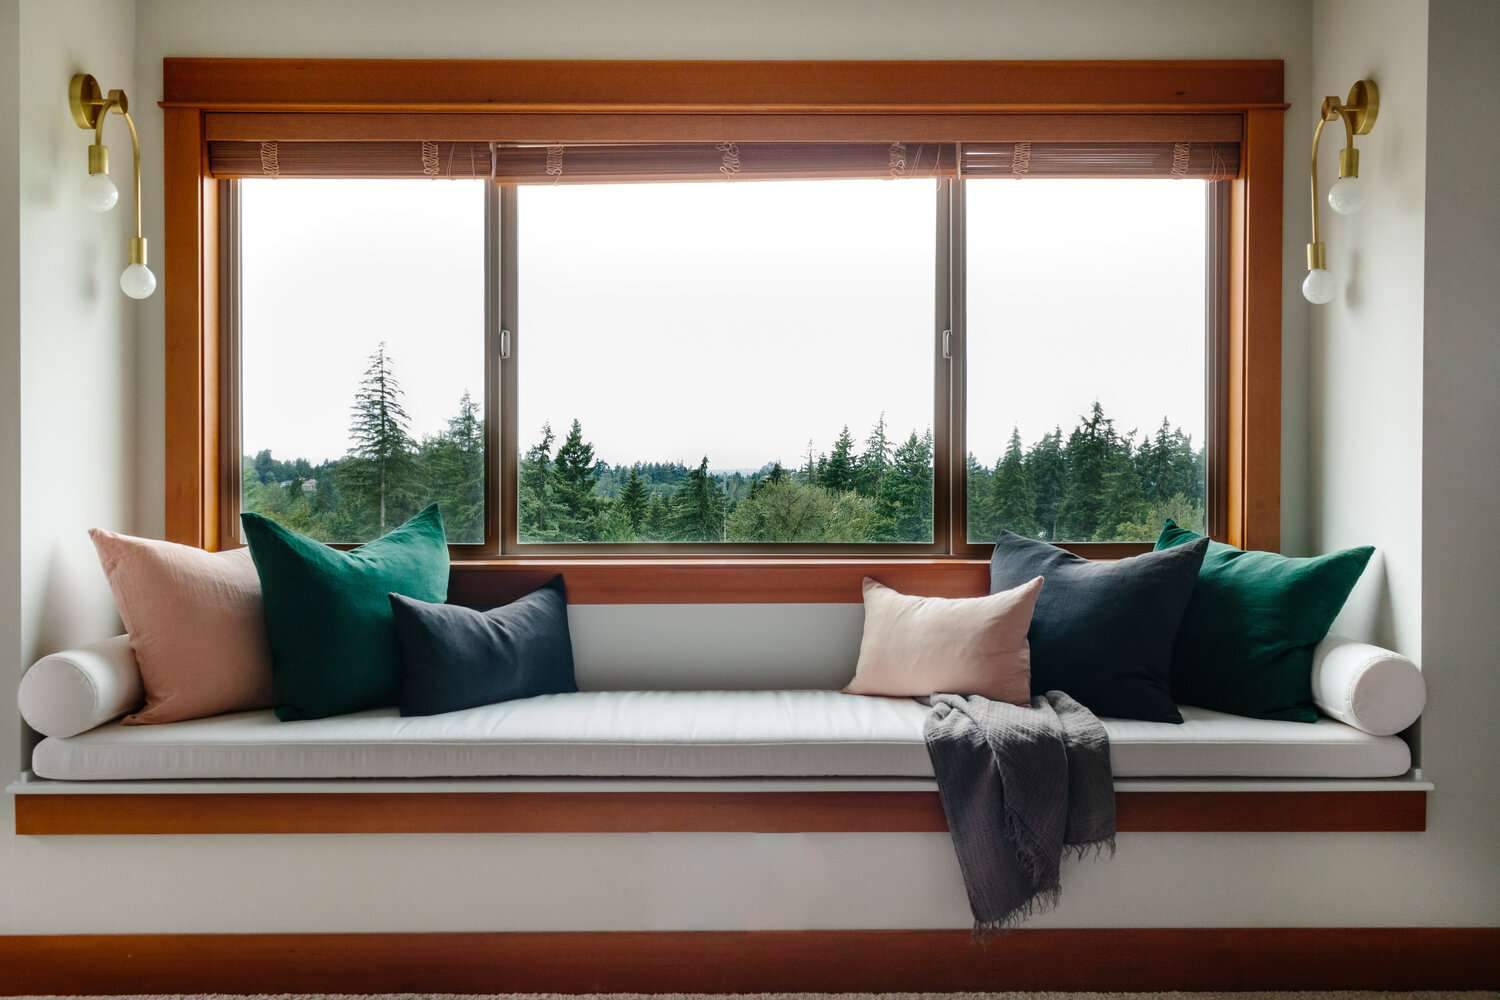 Window nook with cushion and pillows